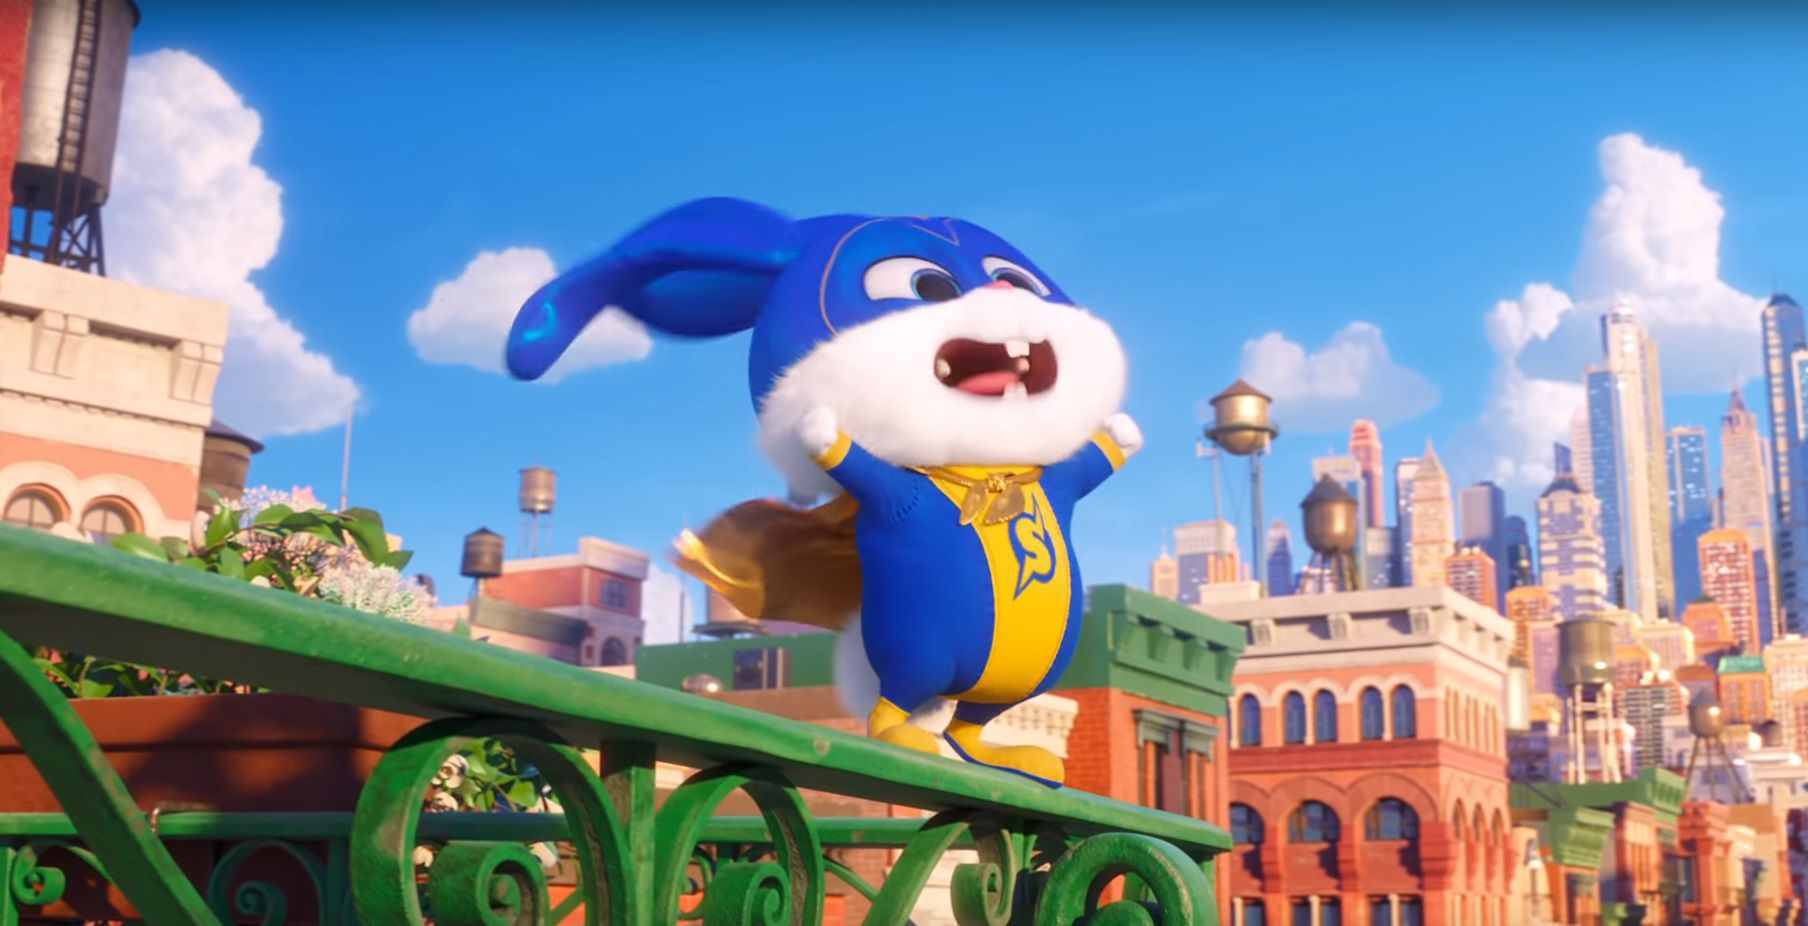 The Secret Life of Pets 2 (2019) - Super Bunny